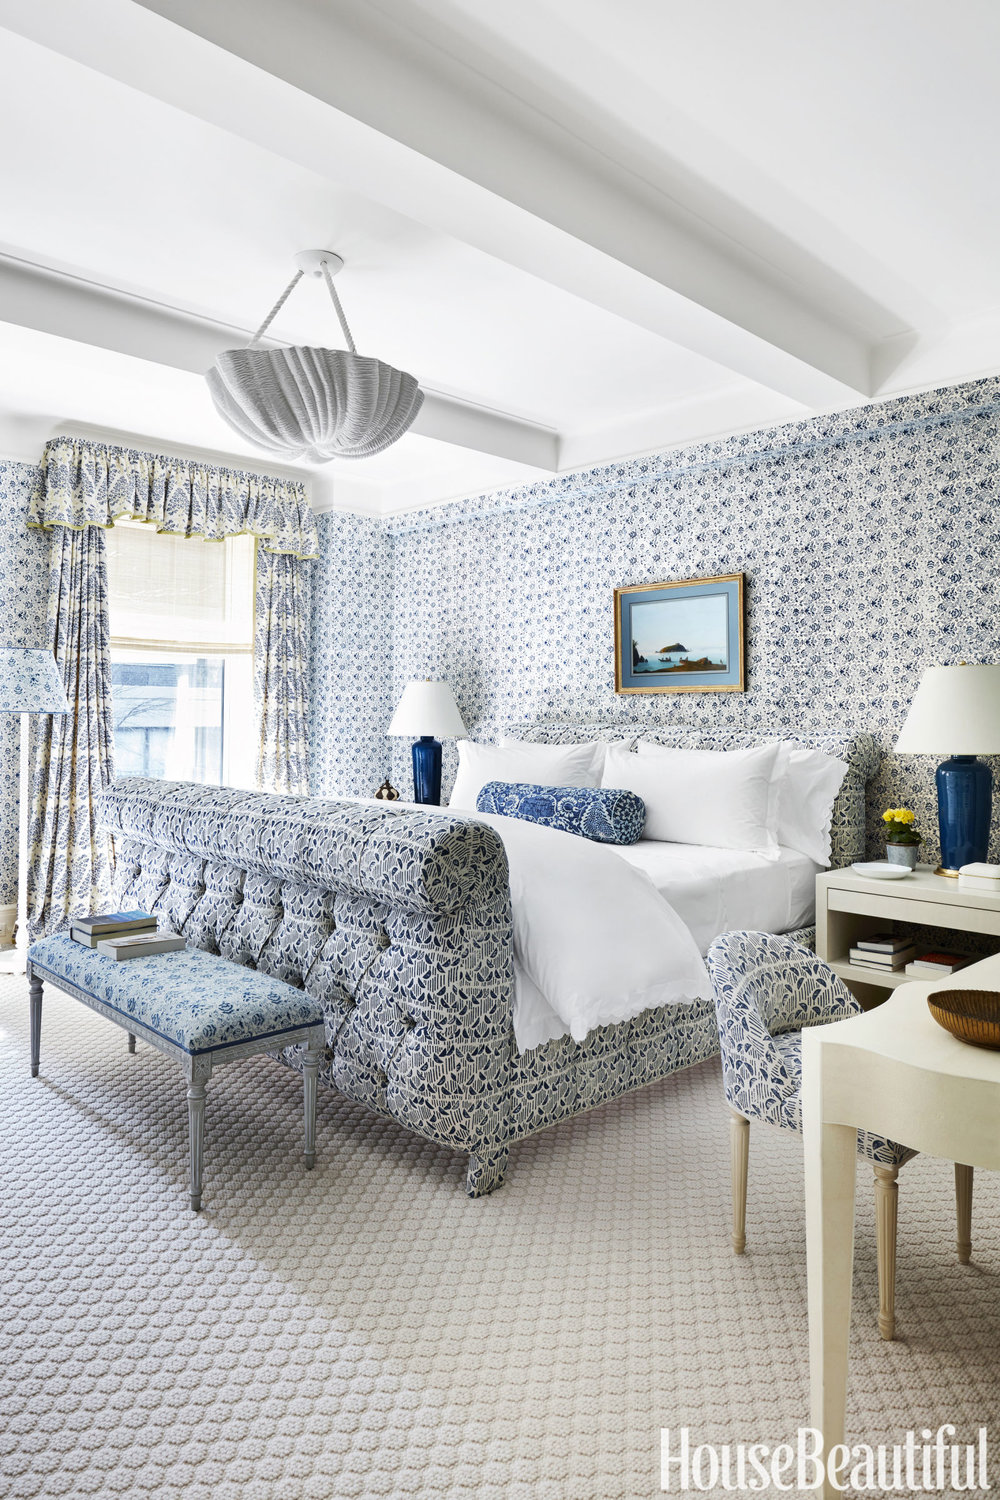 Dreamy Blue and White Bedroom